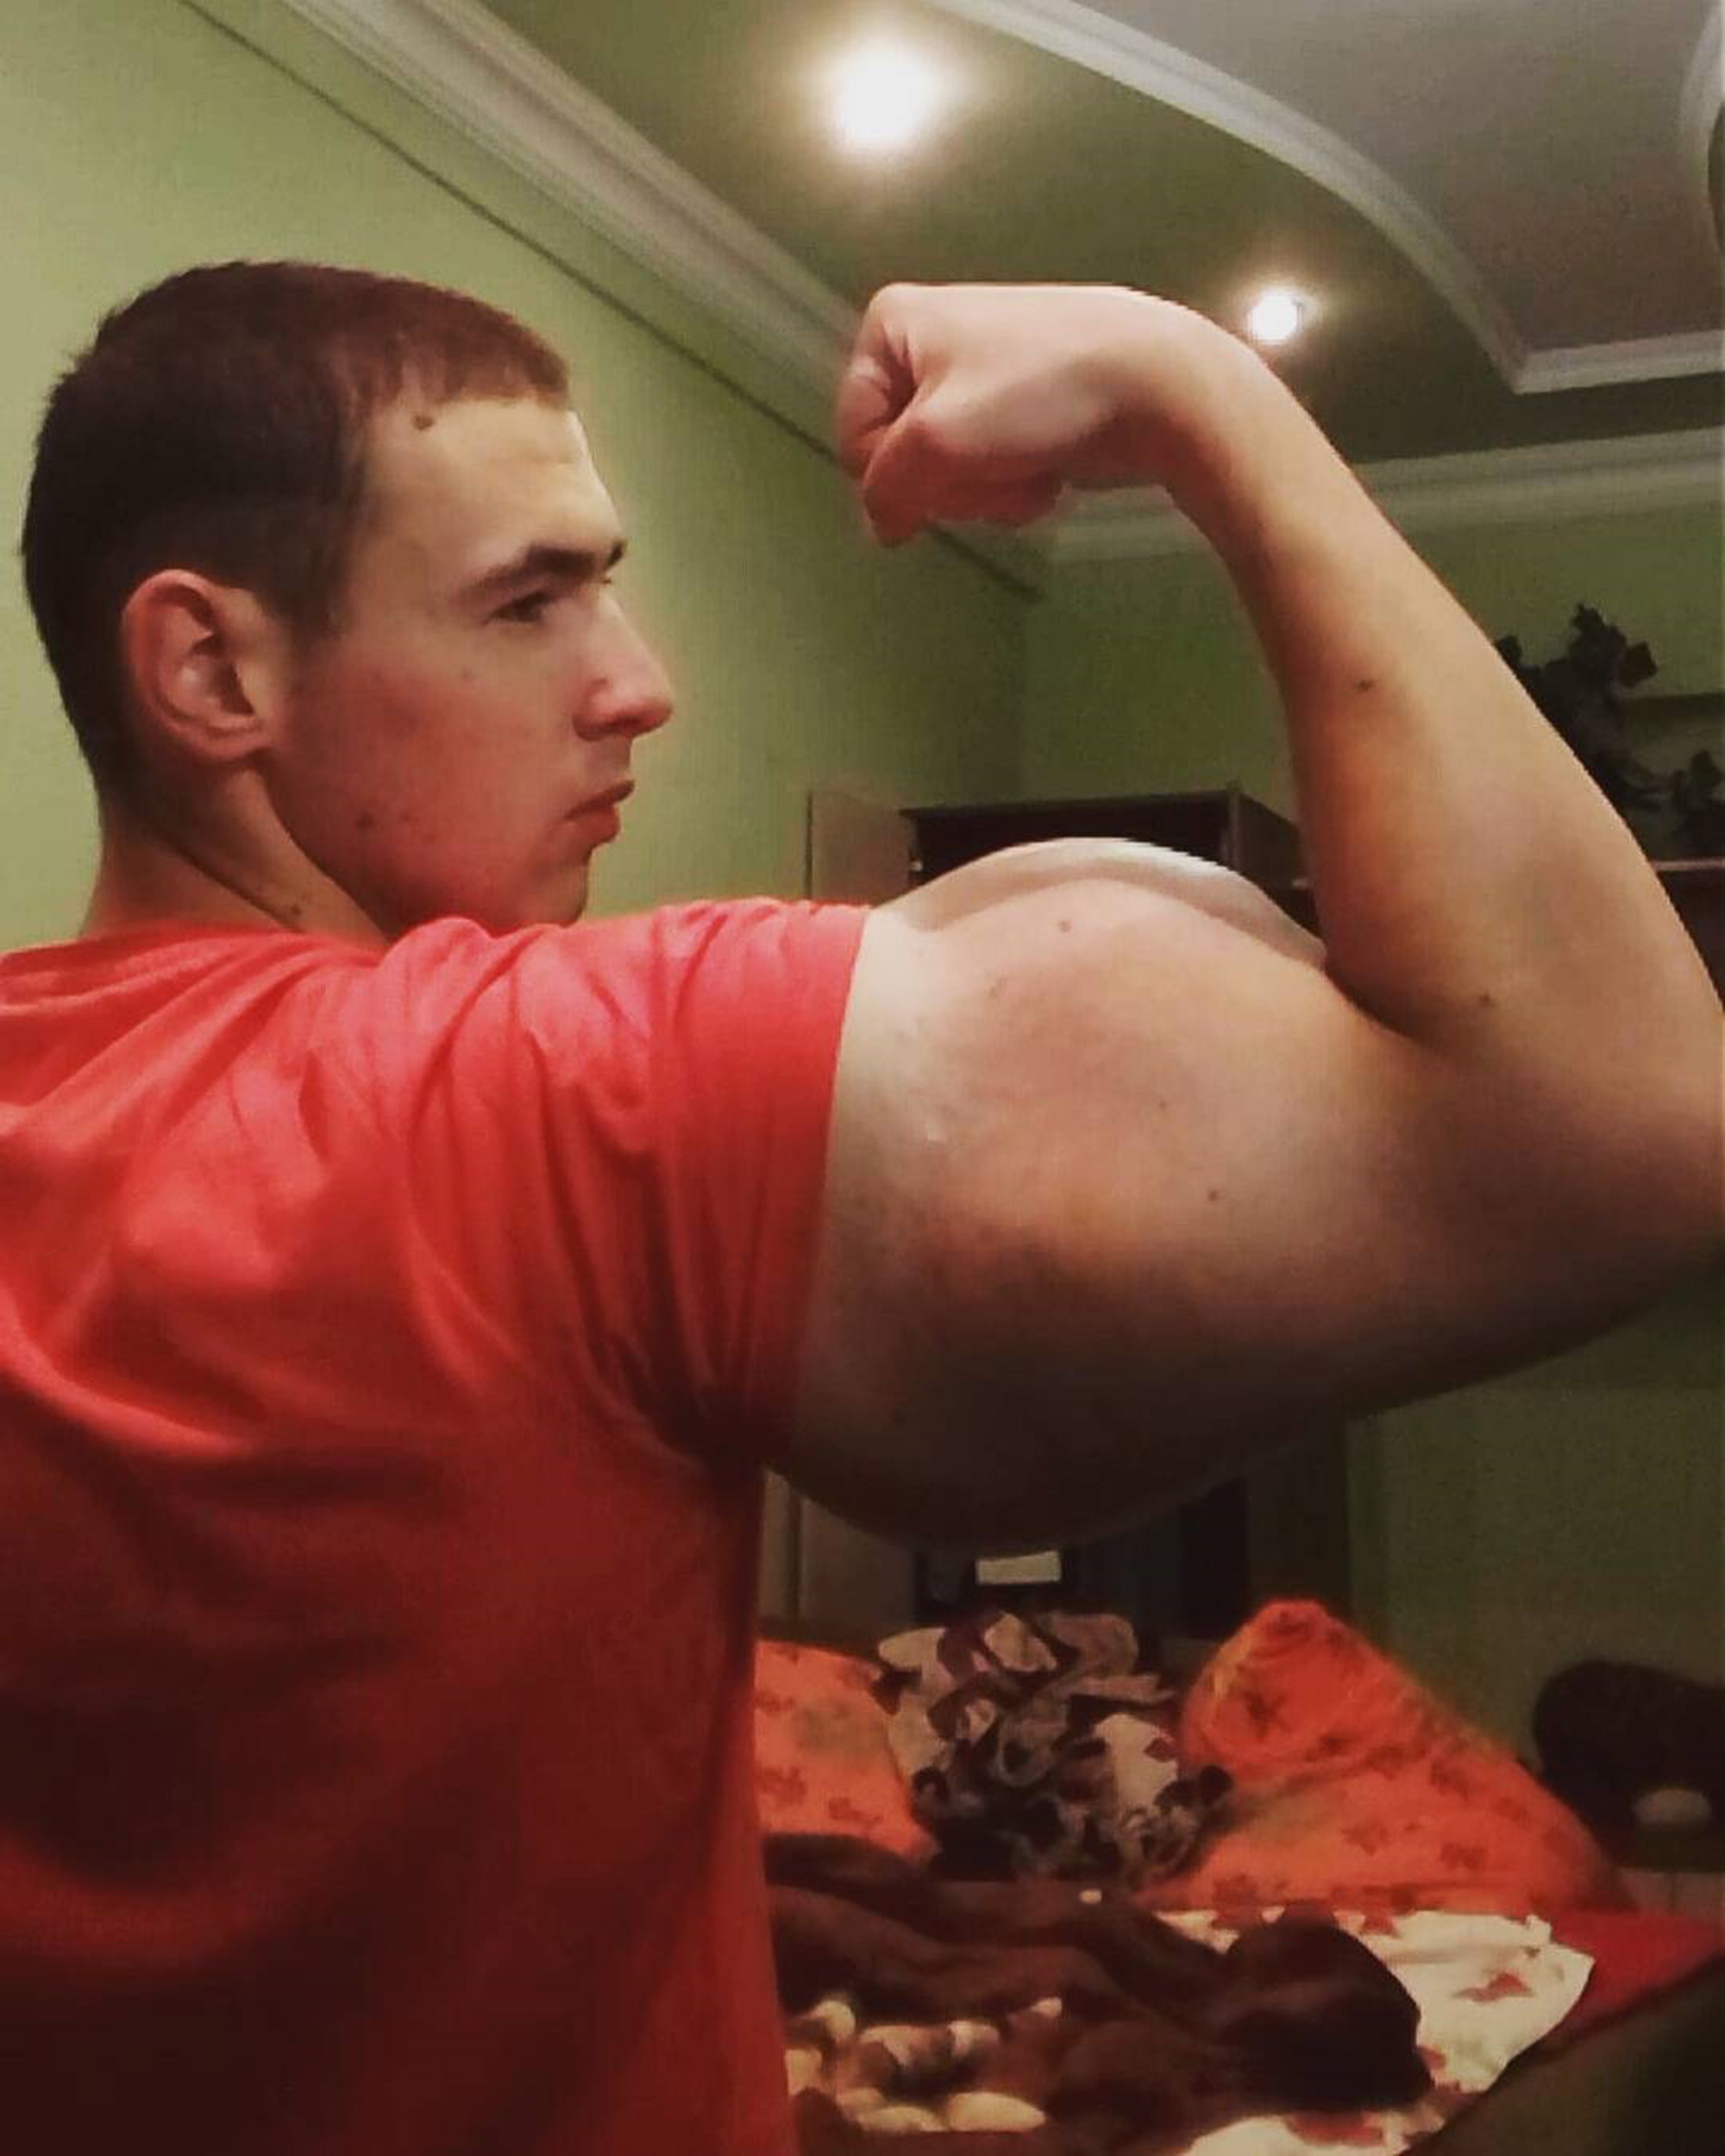 Bodybuilder Shows Off Results Of Deadly Chemical Injections CEN ChemicalBodybuilder 03